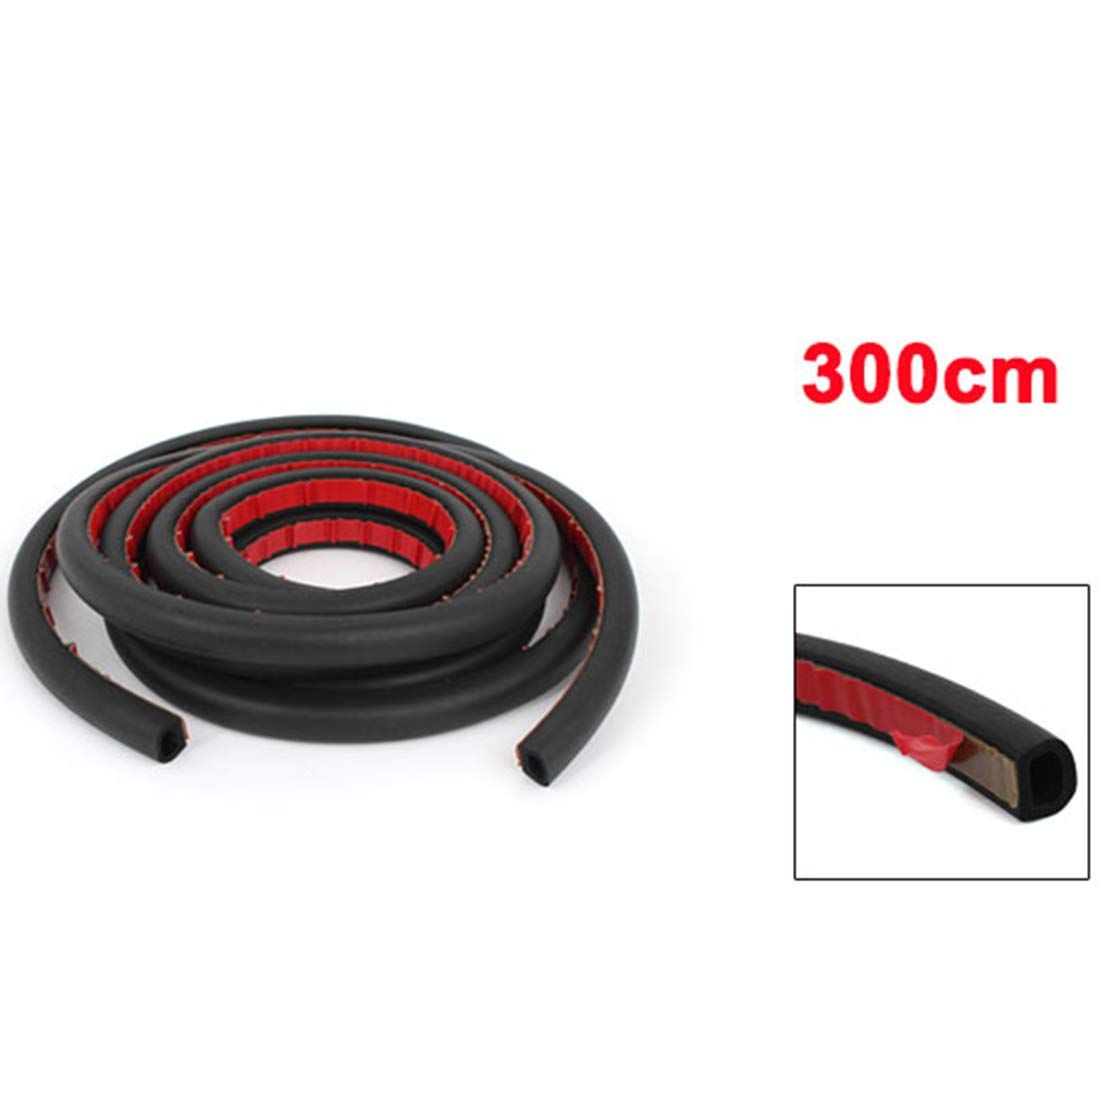 AUTUT 9.8Ft Long D-Shape Door Rubber Seal Strip Self Adhesive Hollow for Car Truck Motor Door Cover Trunk Weatherstrip Soundproofing Engine Cover